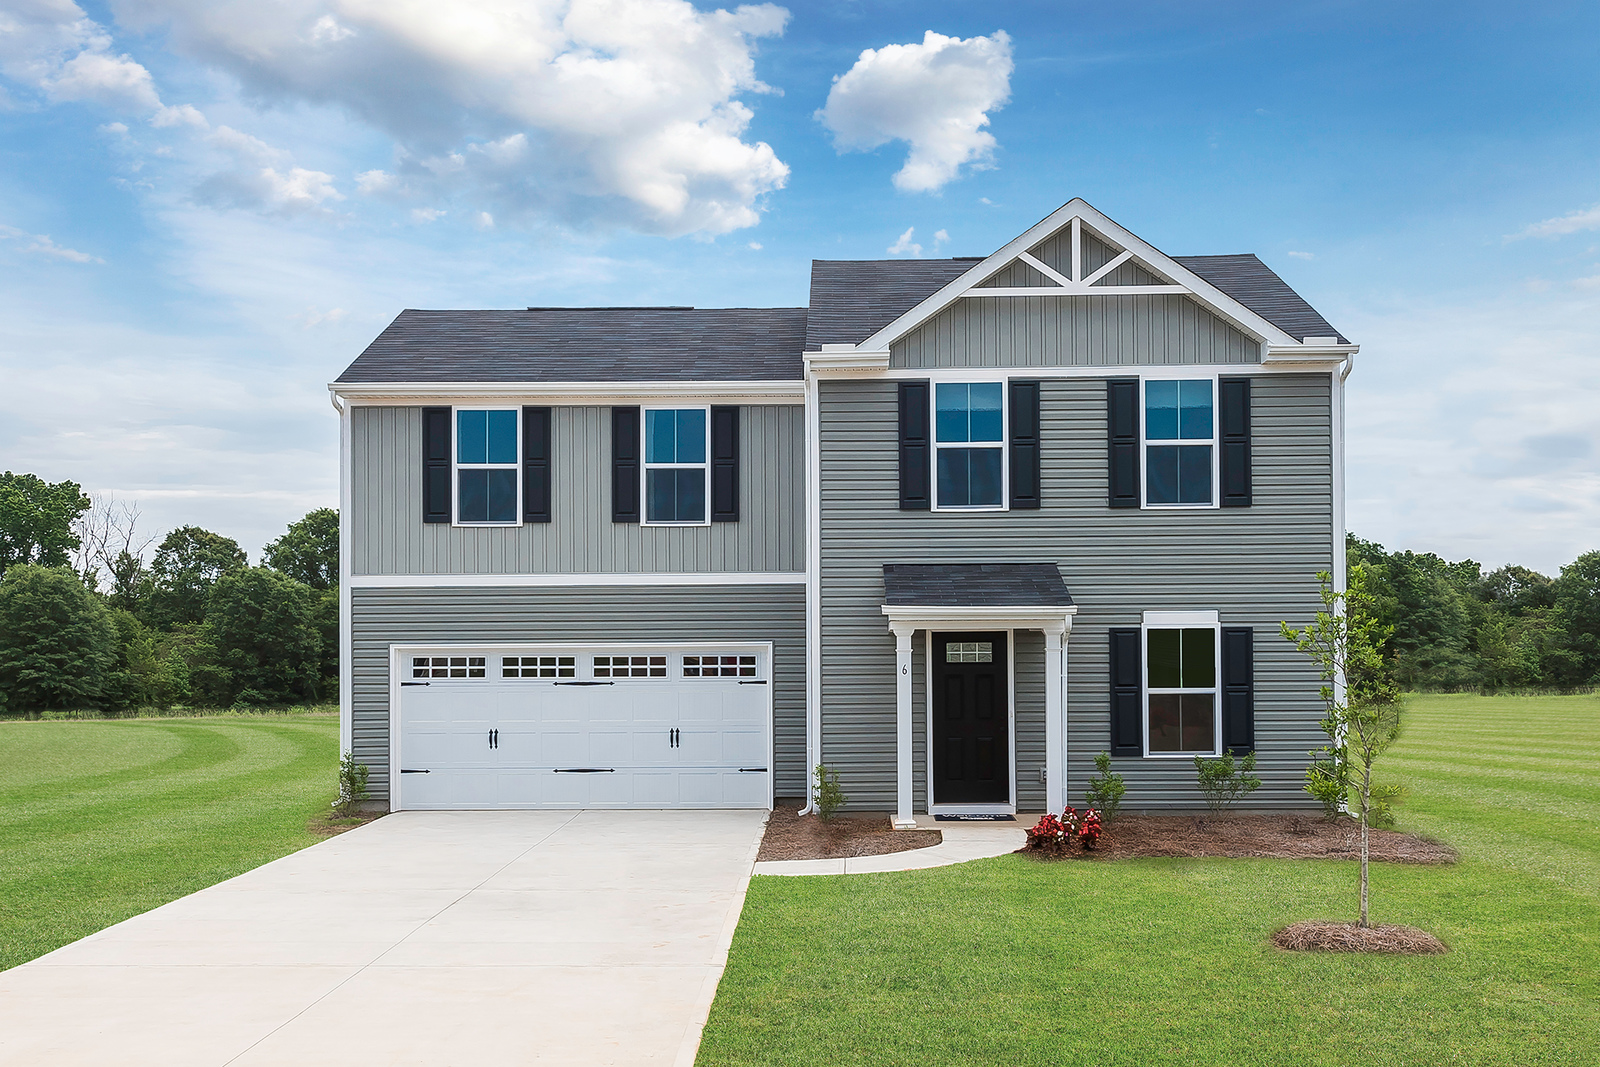 PLAN 1440 at The Preserve at Quarry Lakes